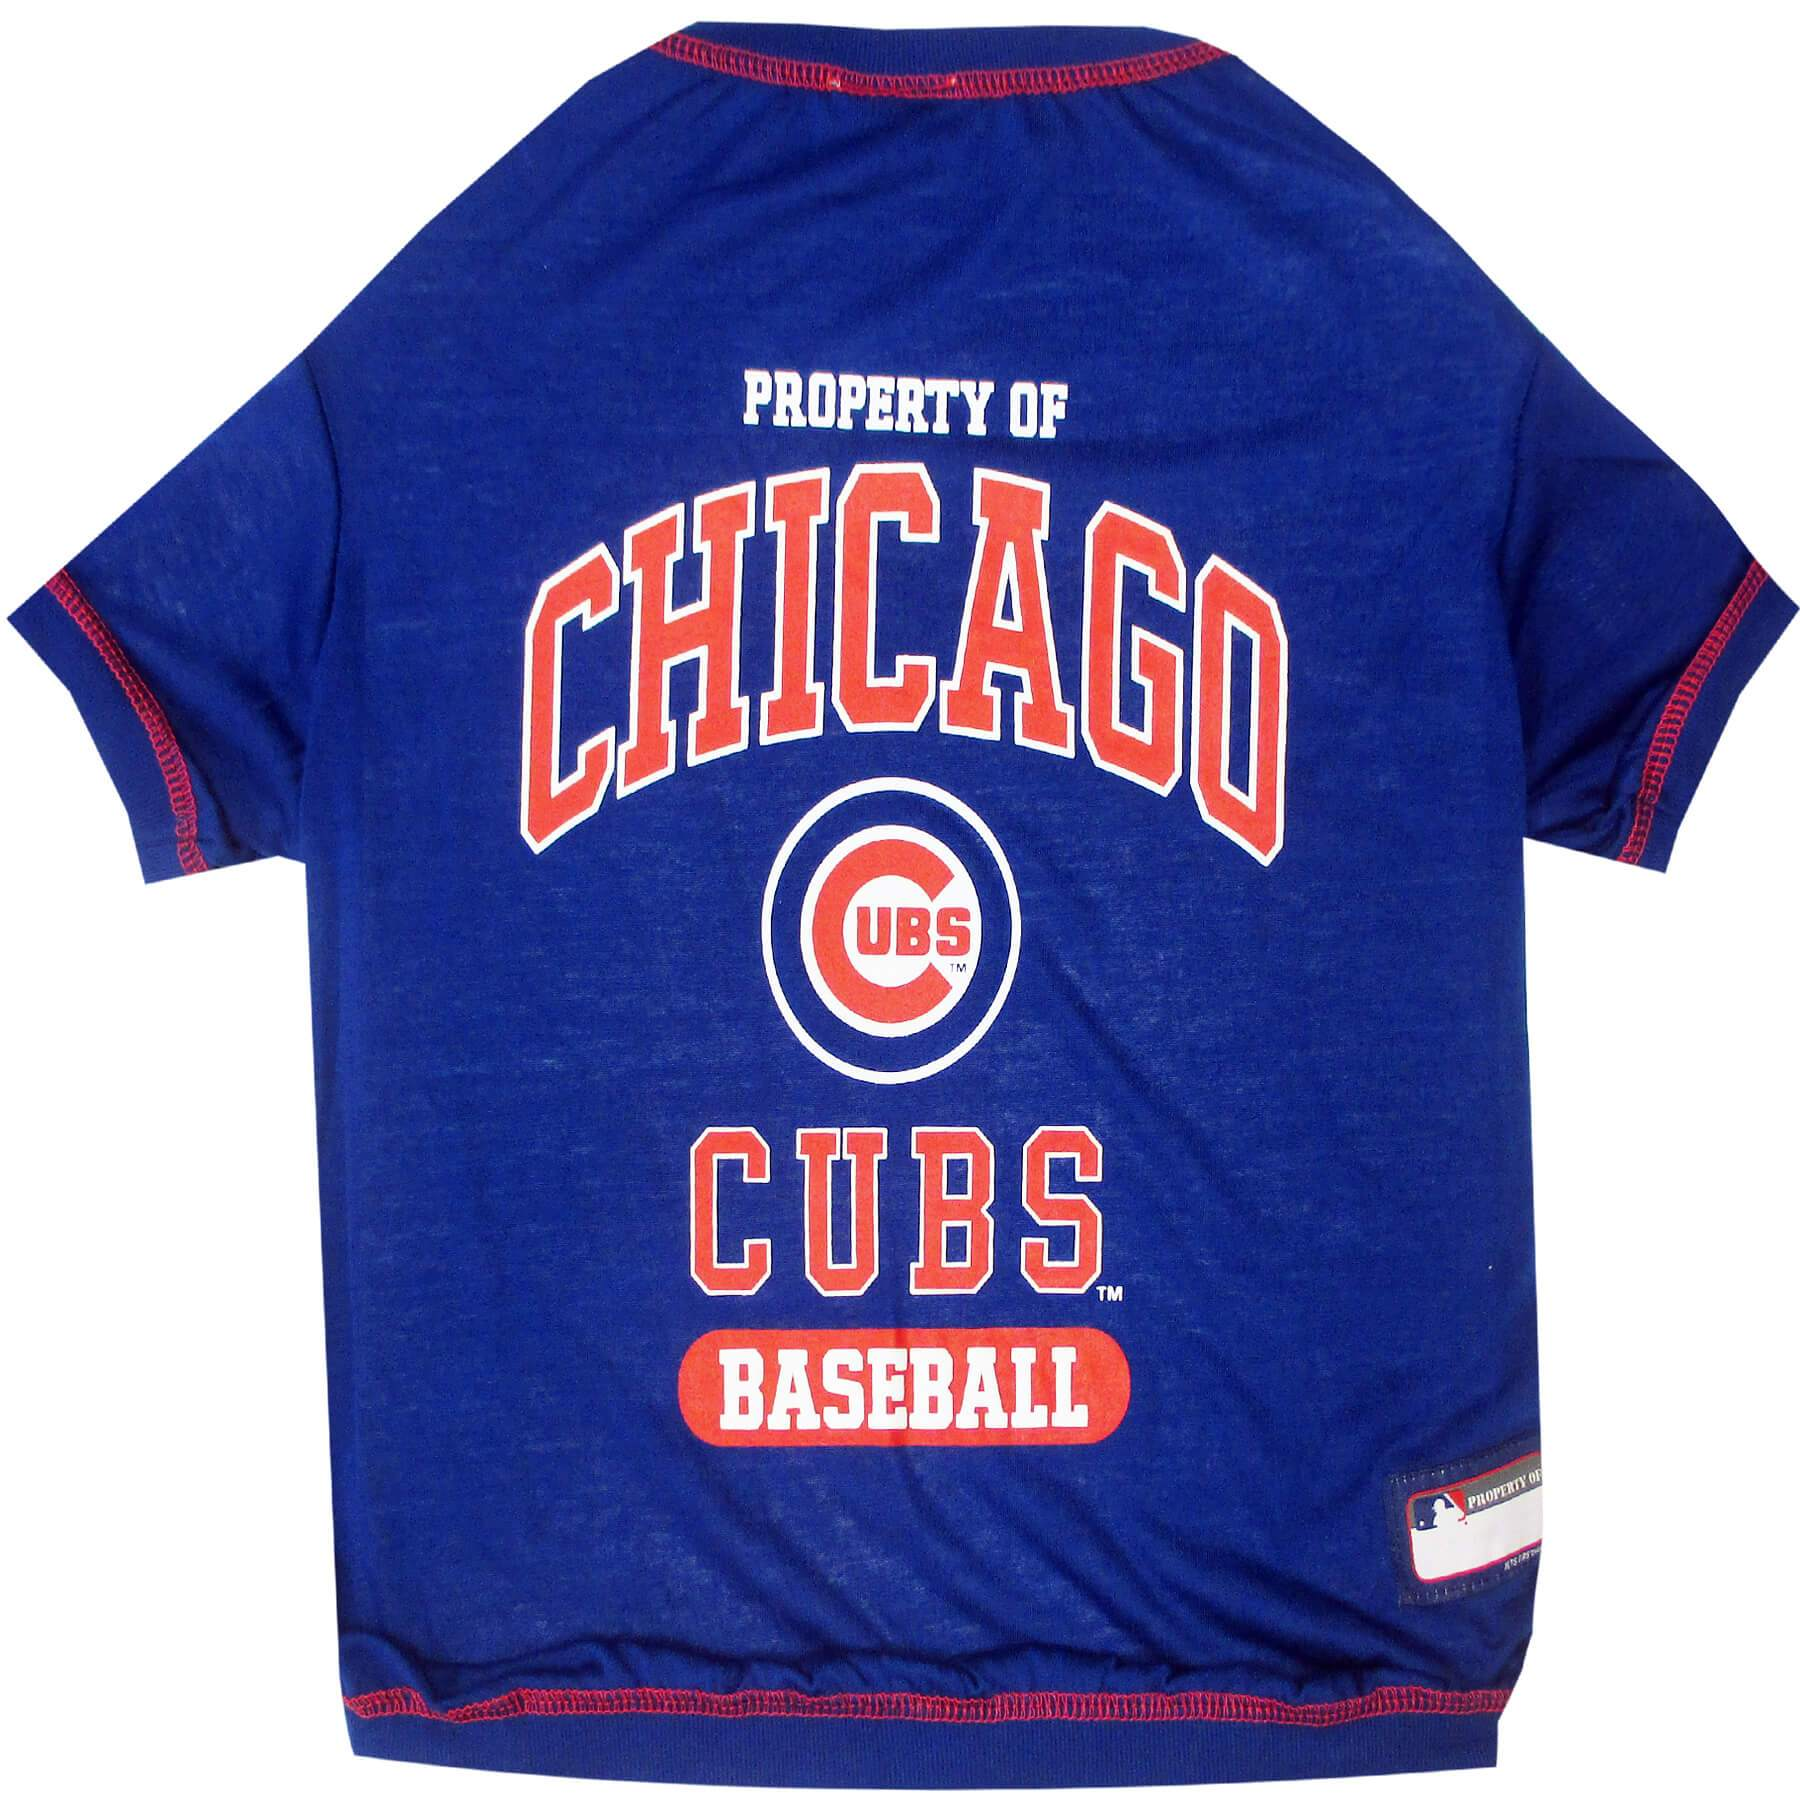 Chicago Cubs Dog Shirt - Jersey Champs